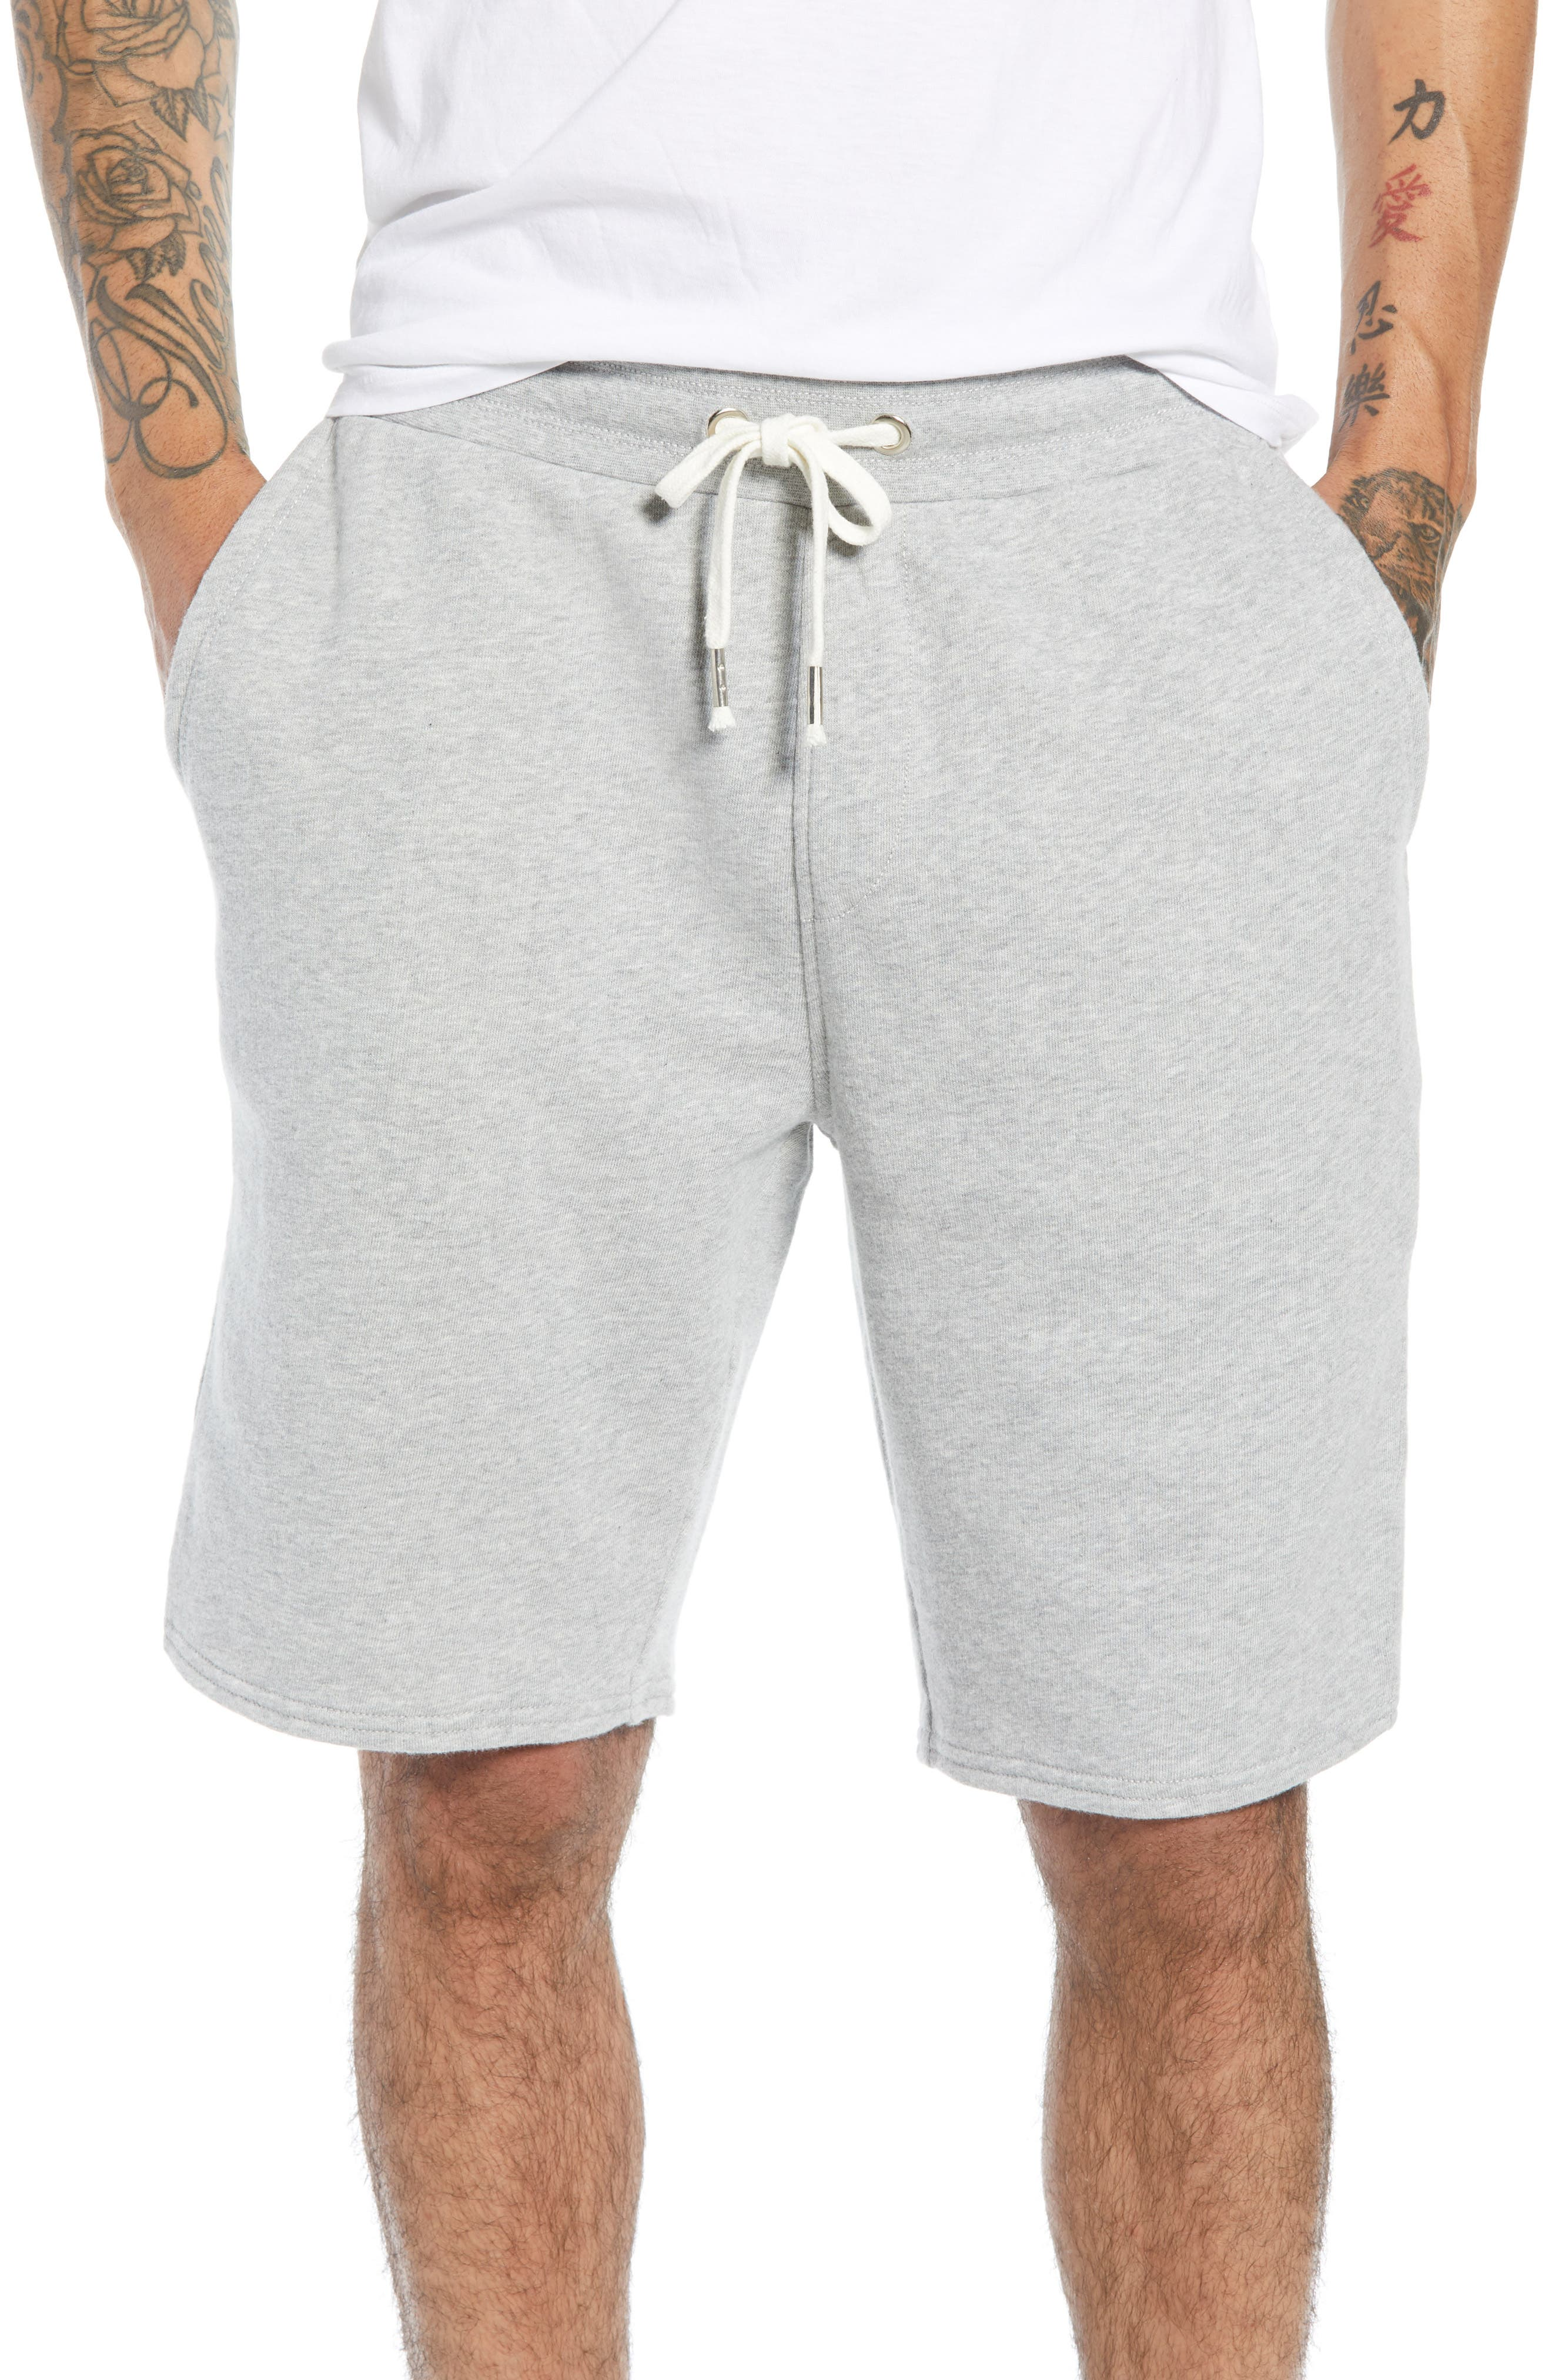 THE RAIL Heathered Athletic Shorts, Main, color, 050